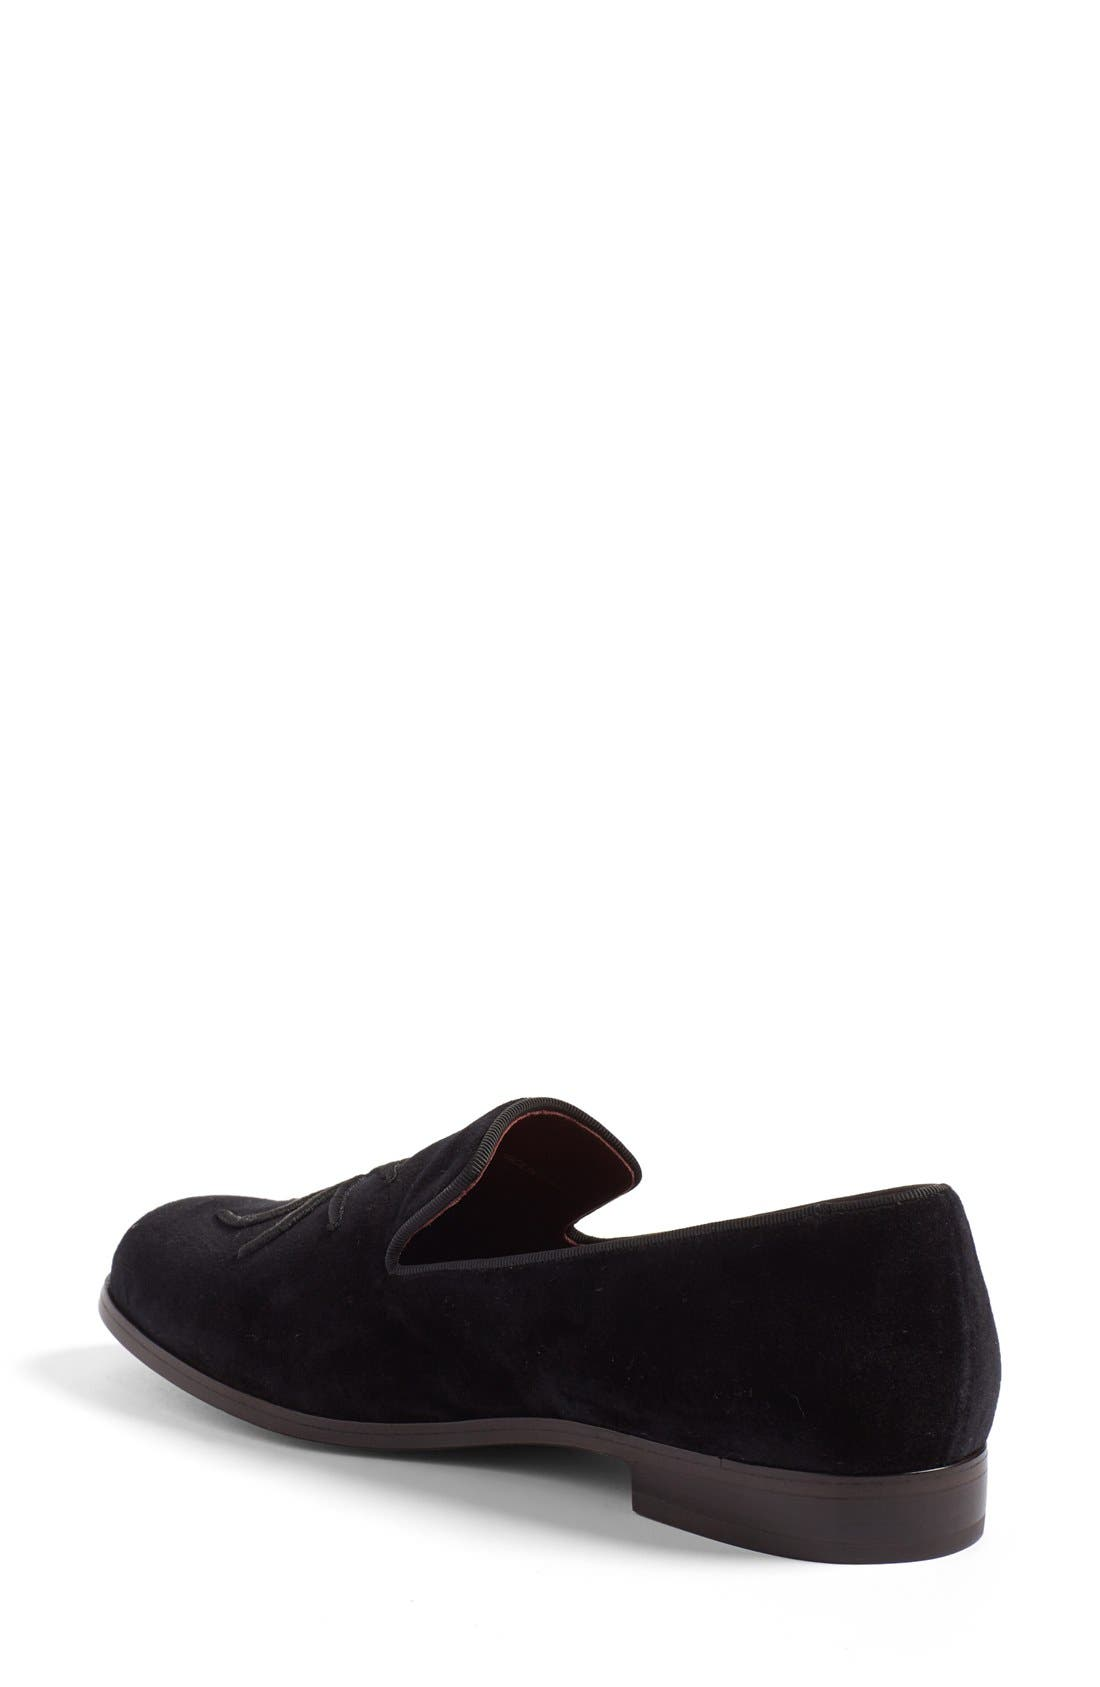 Alternate Image 2  - MARC JACOBS 'Zoe' Embroidered Spider Loafer (Women)